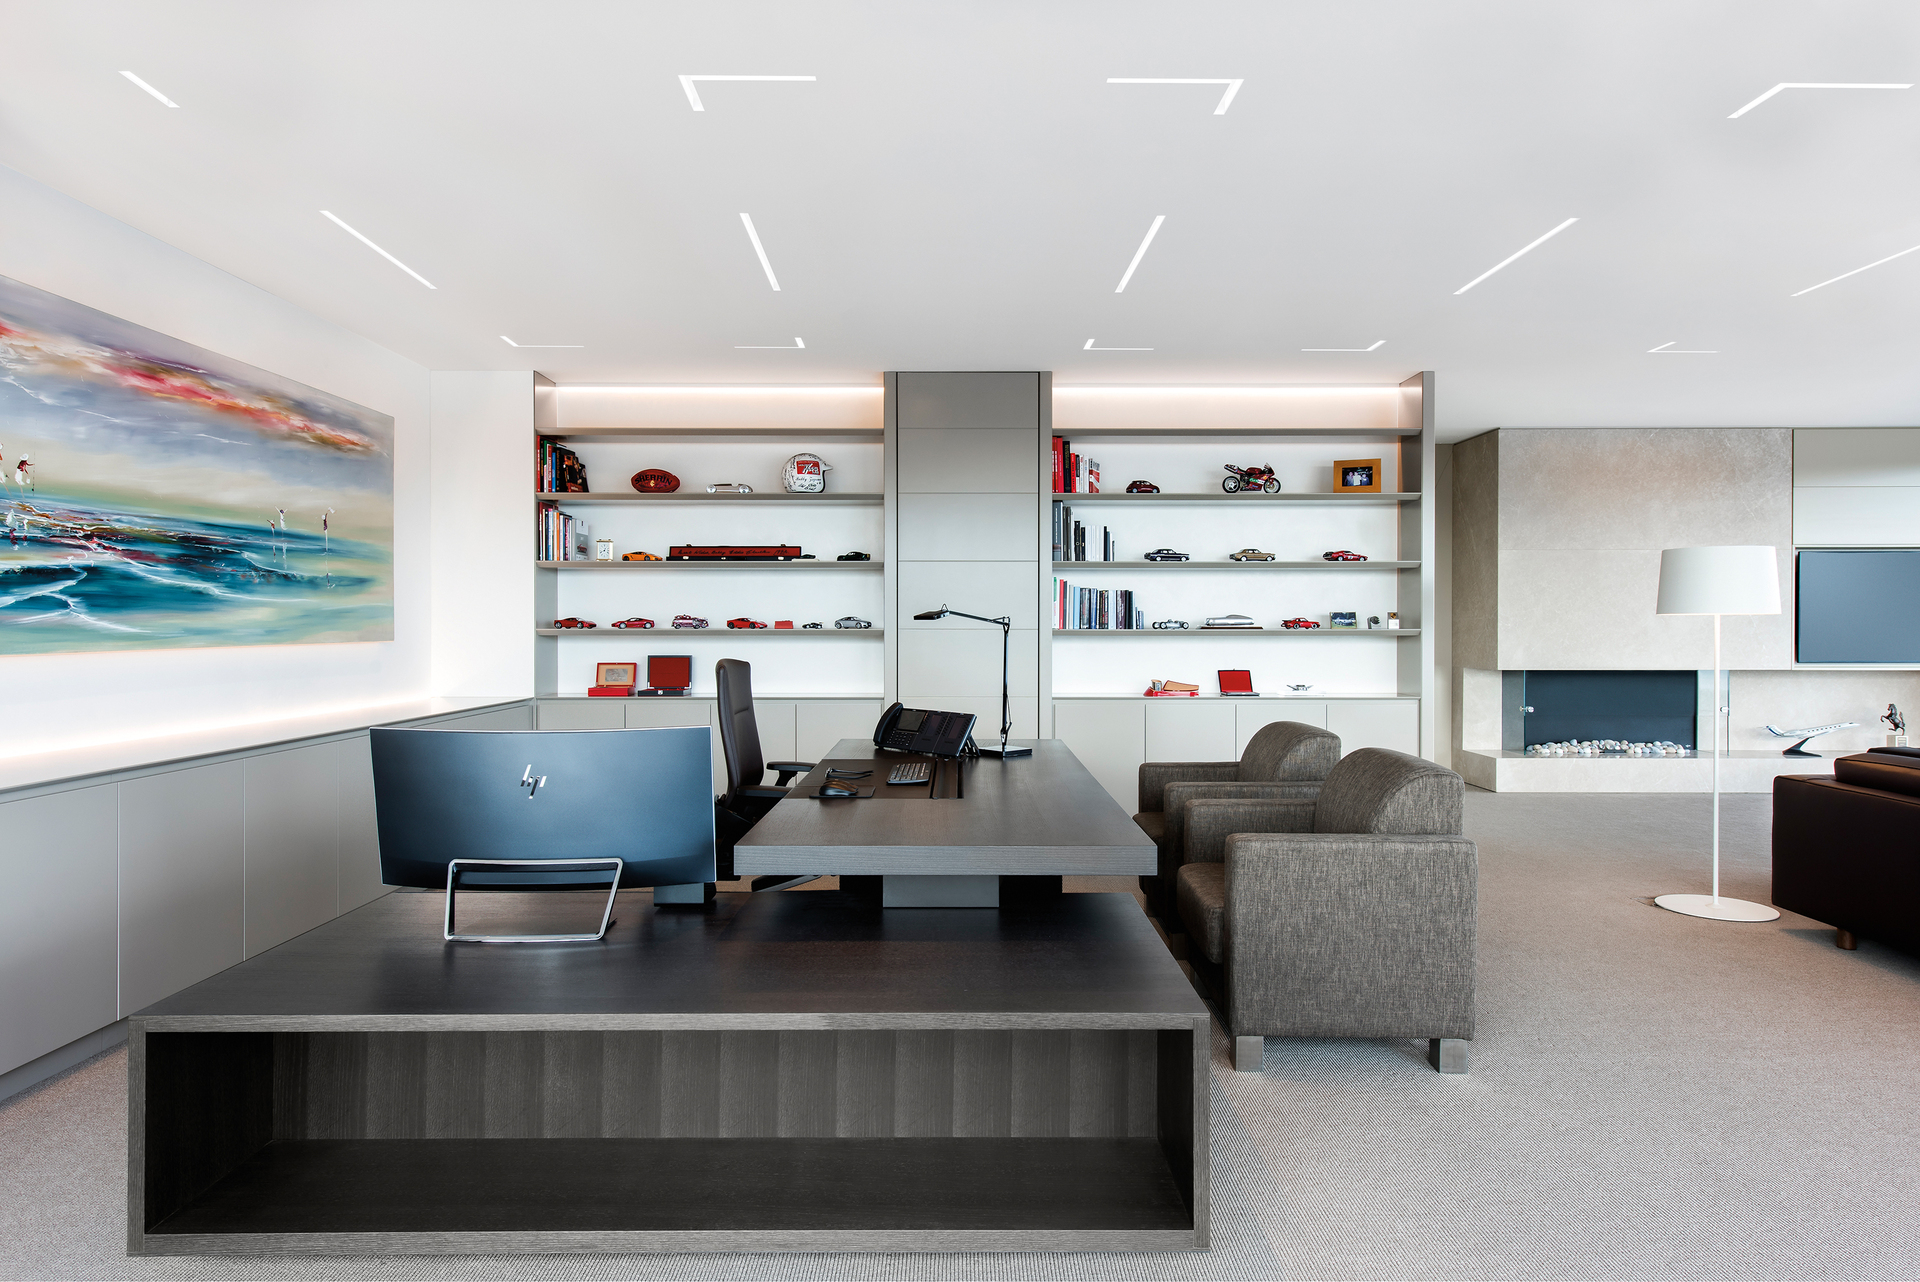 Notch 1 delivers a wide variety of trim and endcap options, adding subtle punctuation of the ceiling plane. Extruded aluminum trim designs provide an easy installation with precise fit and finish in drywall or grid ceiling systems.